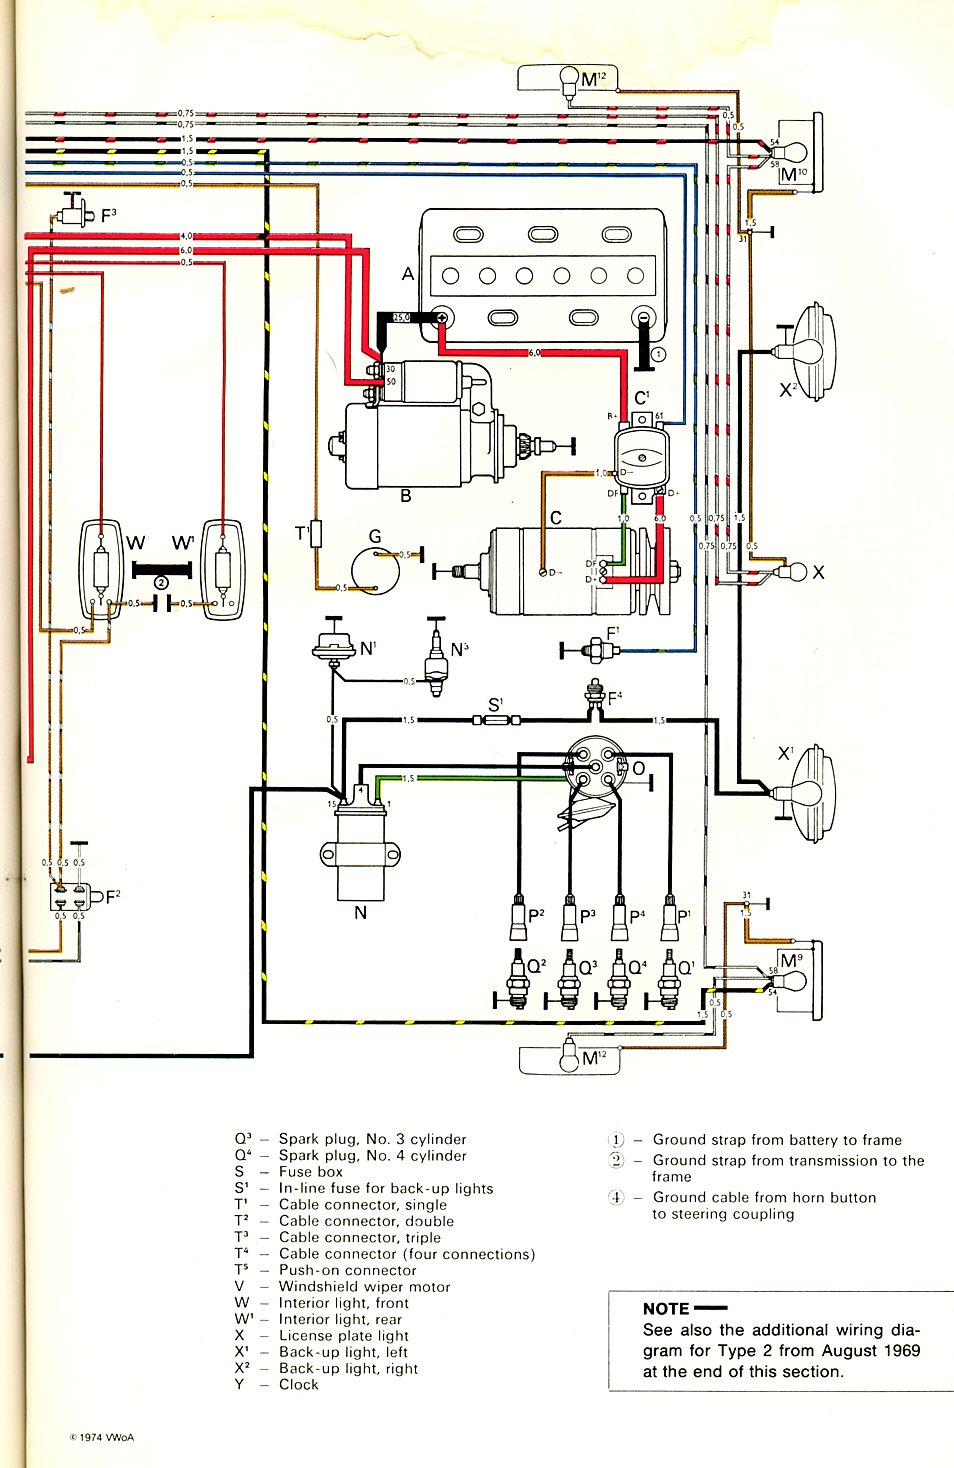 baybus_70b thesamba com type 2 wiring diagrams VW Alternator Hook Up at bayanpartner.co